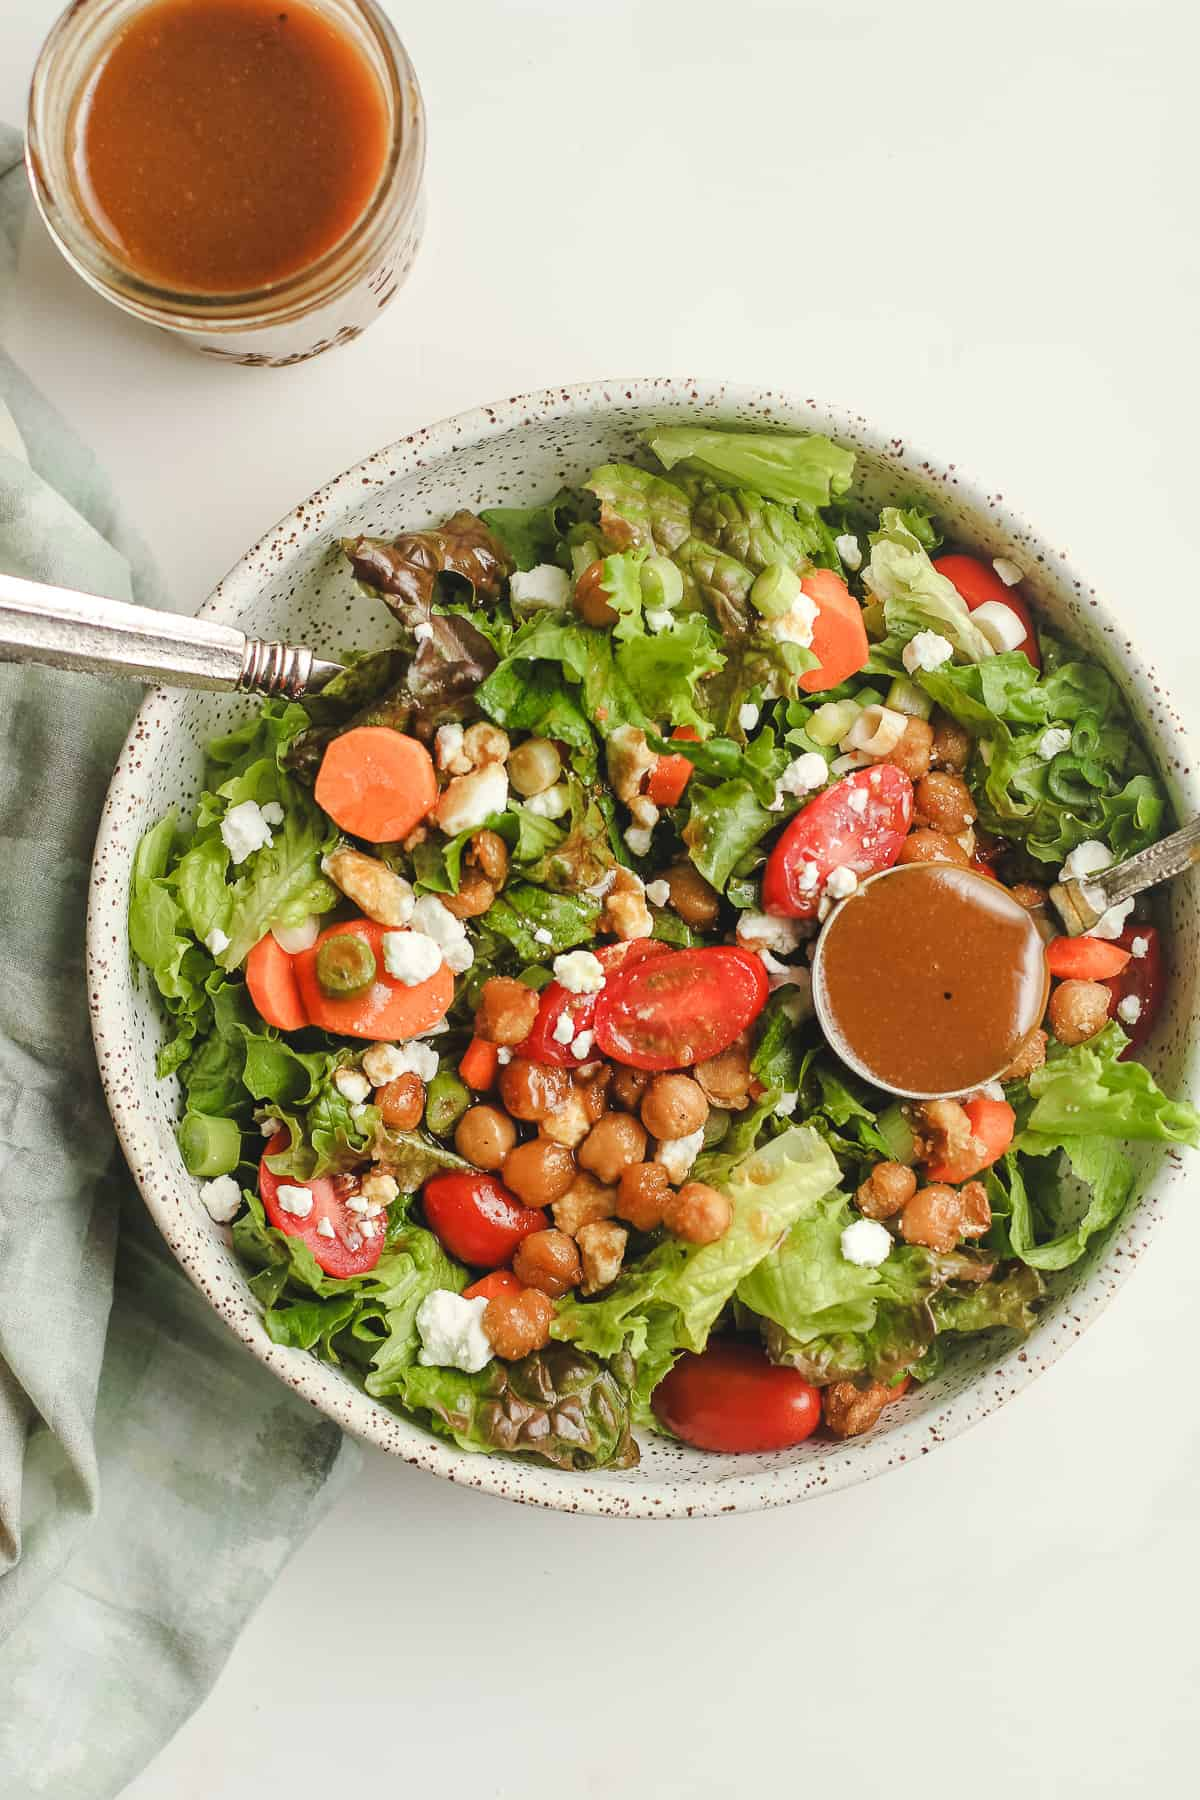 Overhead shot of a green salad with a spoonful of balsamic vinaigrette and a jar of dressing.